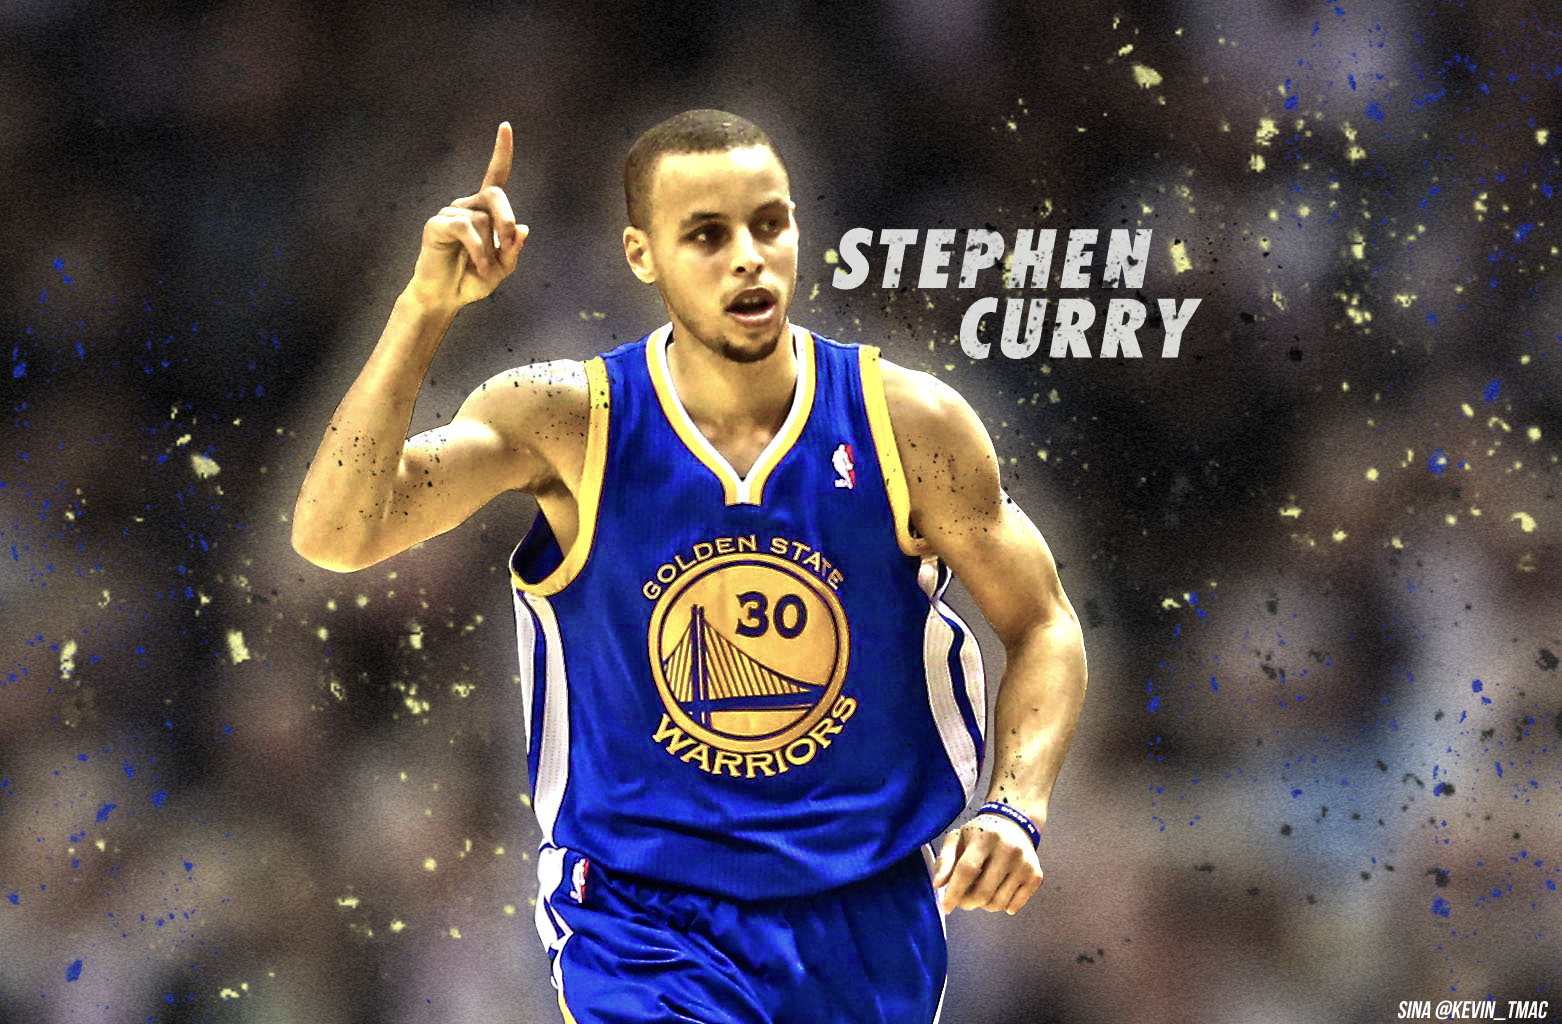 Stephen Curry Golden State Warriors Wallpaper 1562x1024